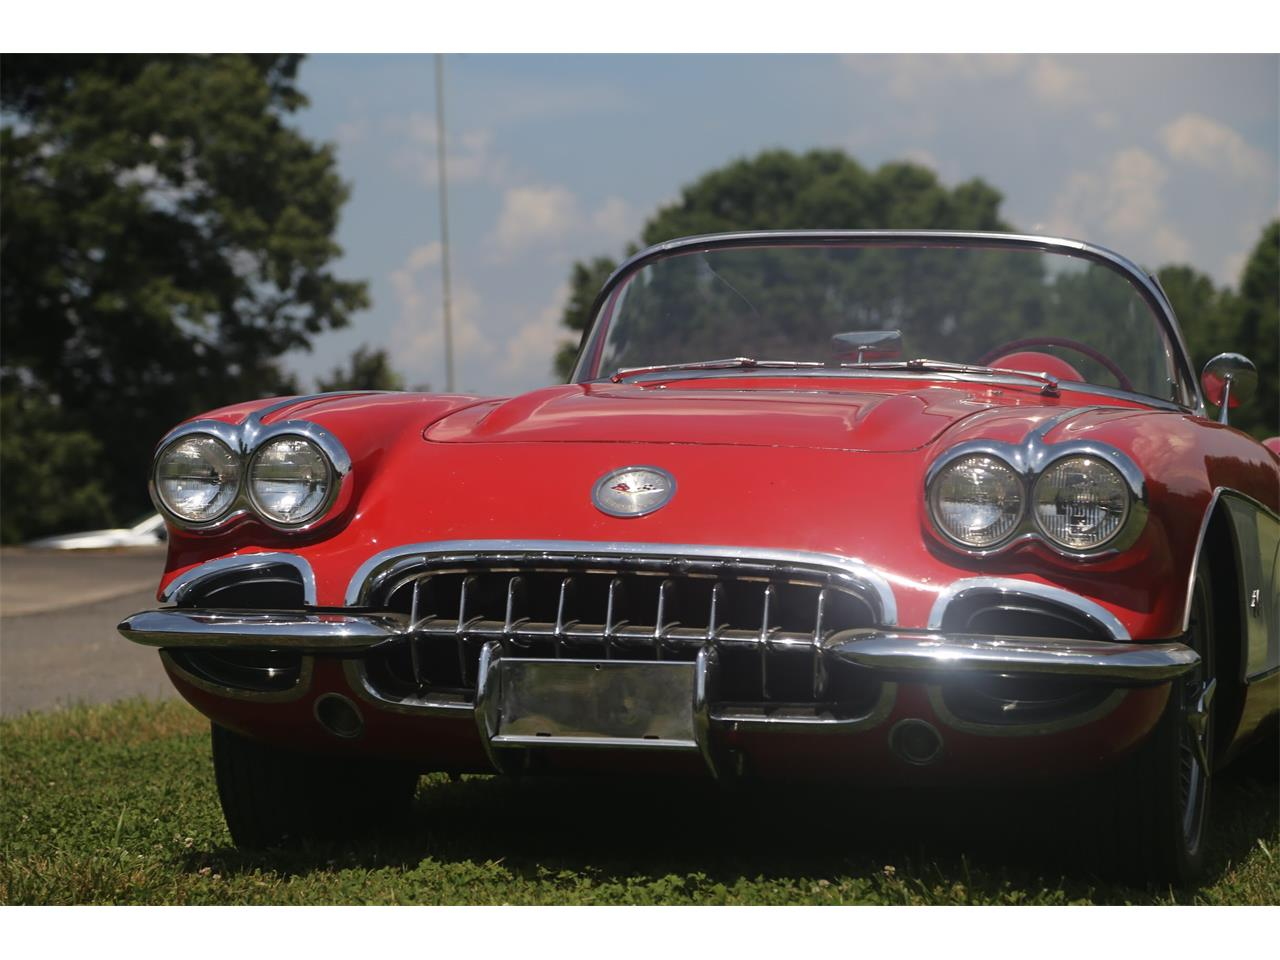 Large Picture of Classic '59 Corvette located in Suwanee Georgia Auction Vehicle Offered by Bullseye Auctions - QCTE